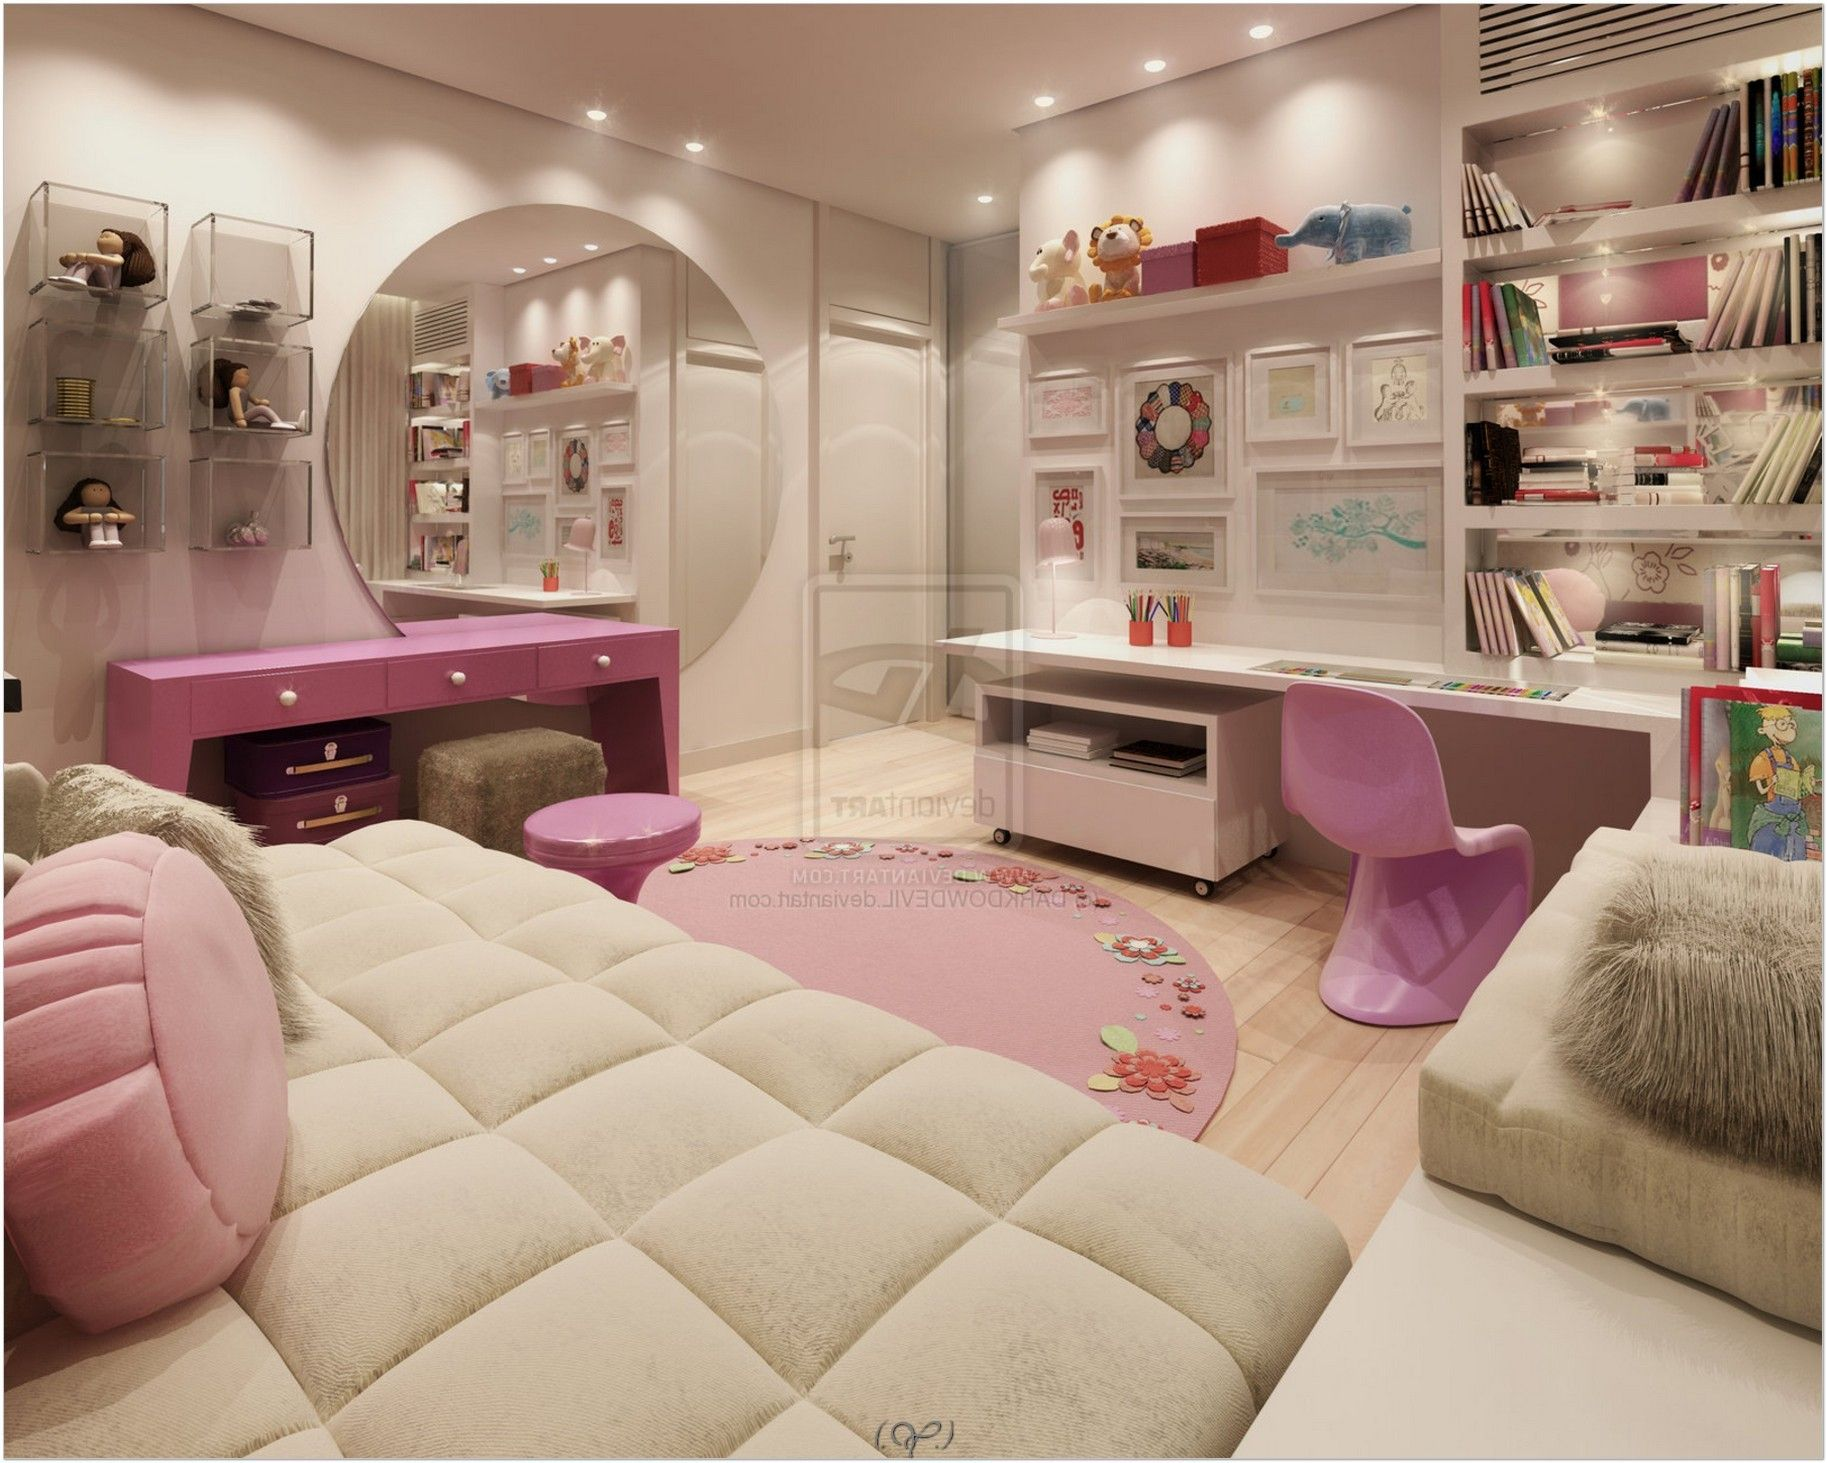 Diverse and Creative Teen Bedroom Ideas by Eugene Zhdanov images